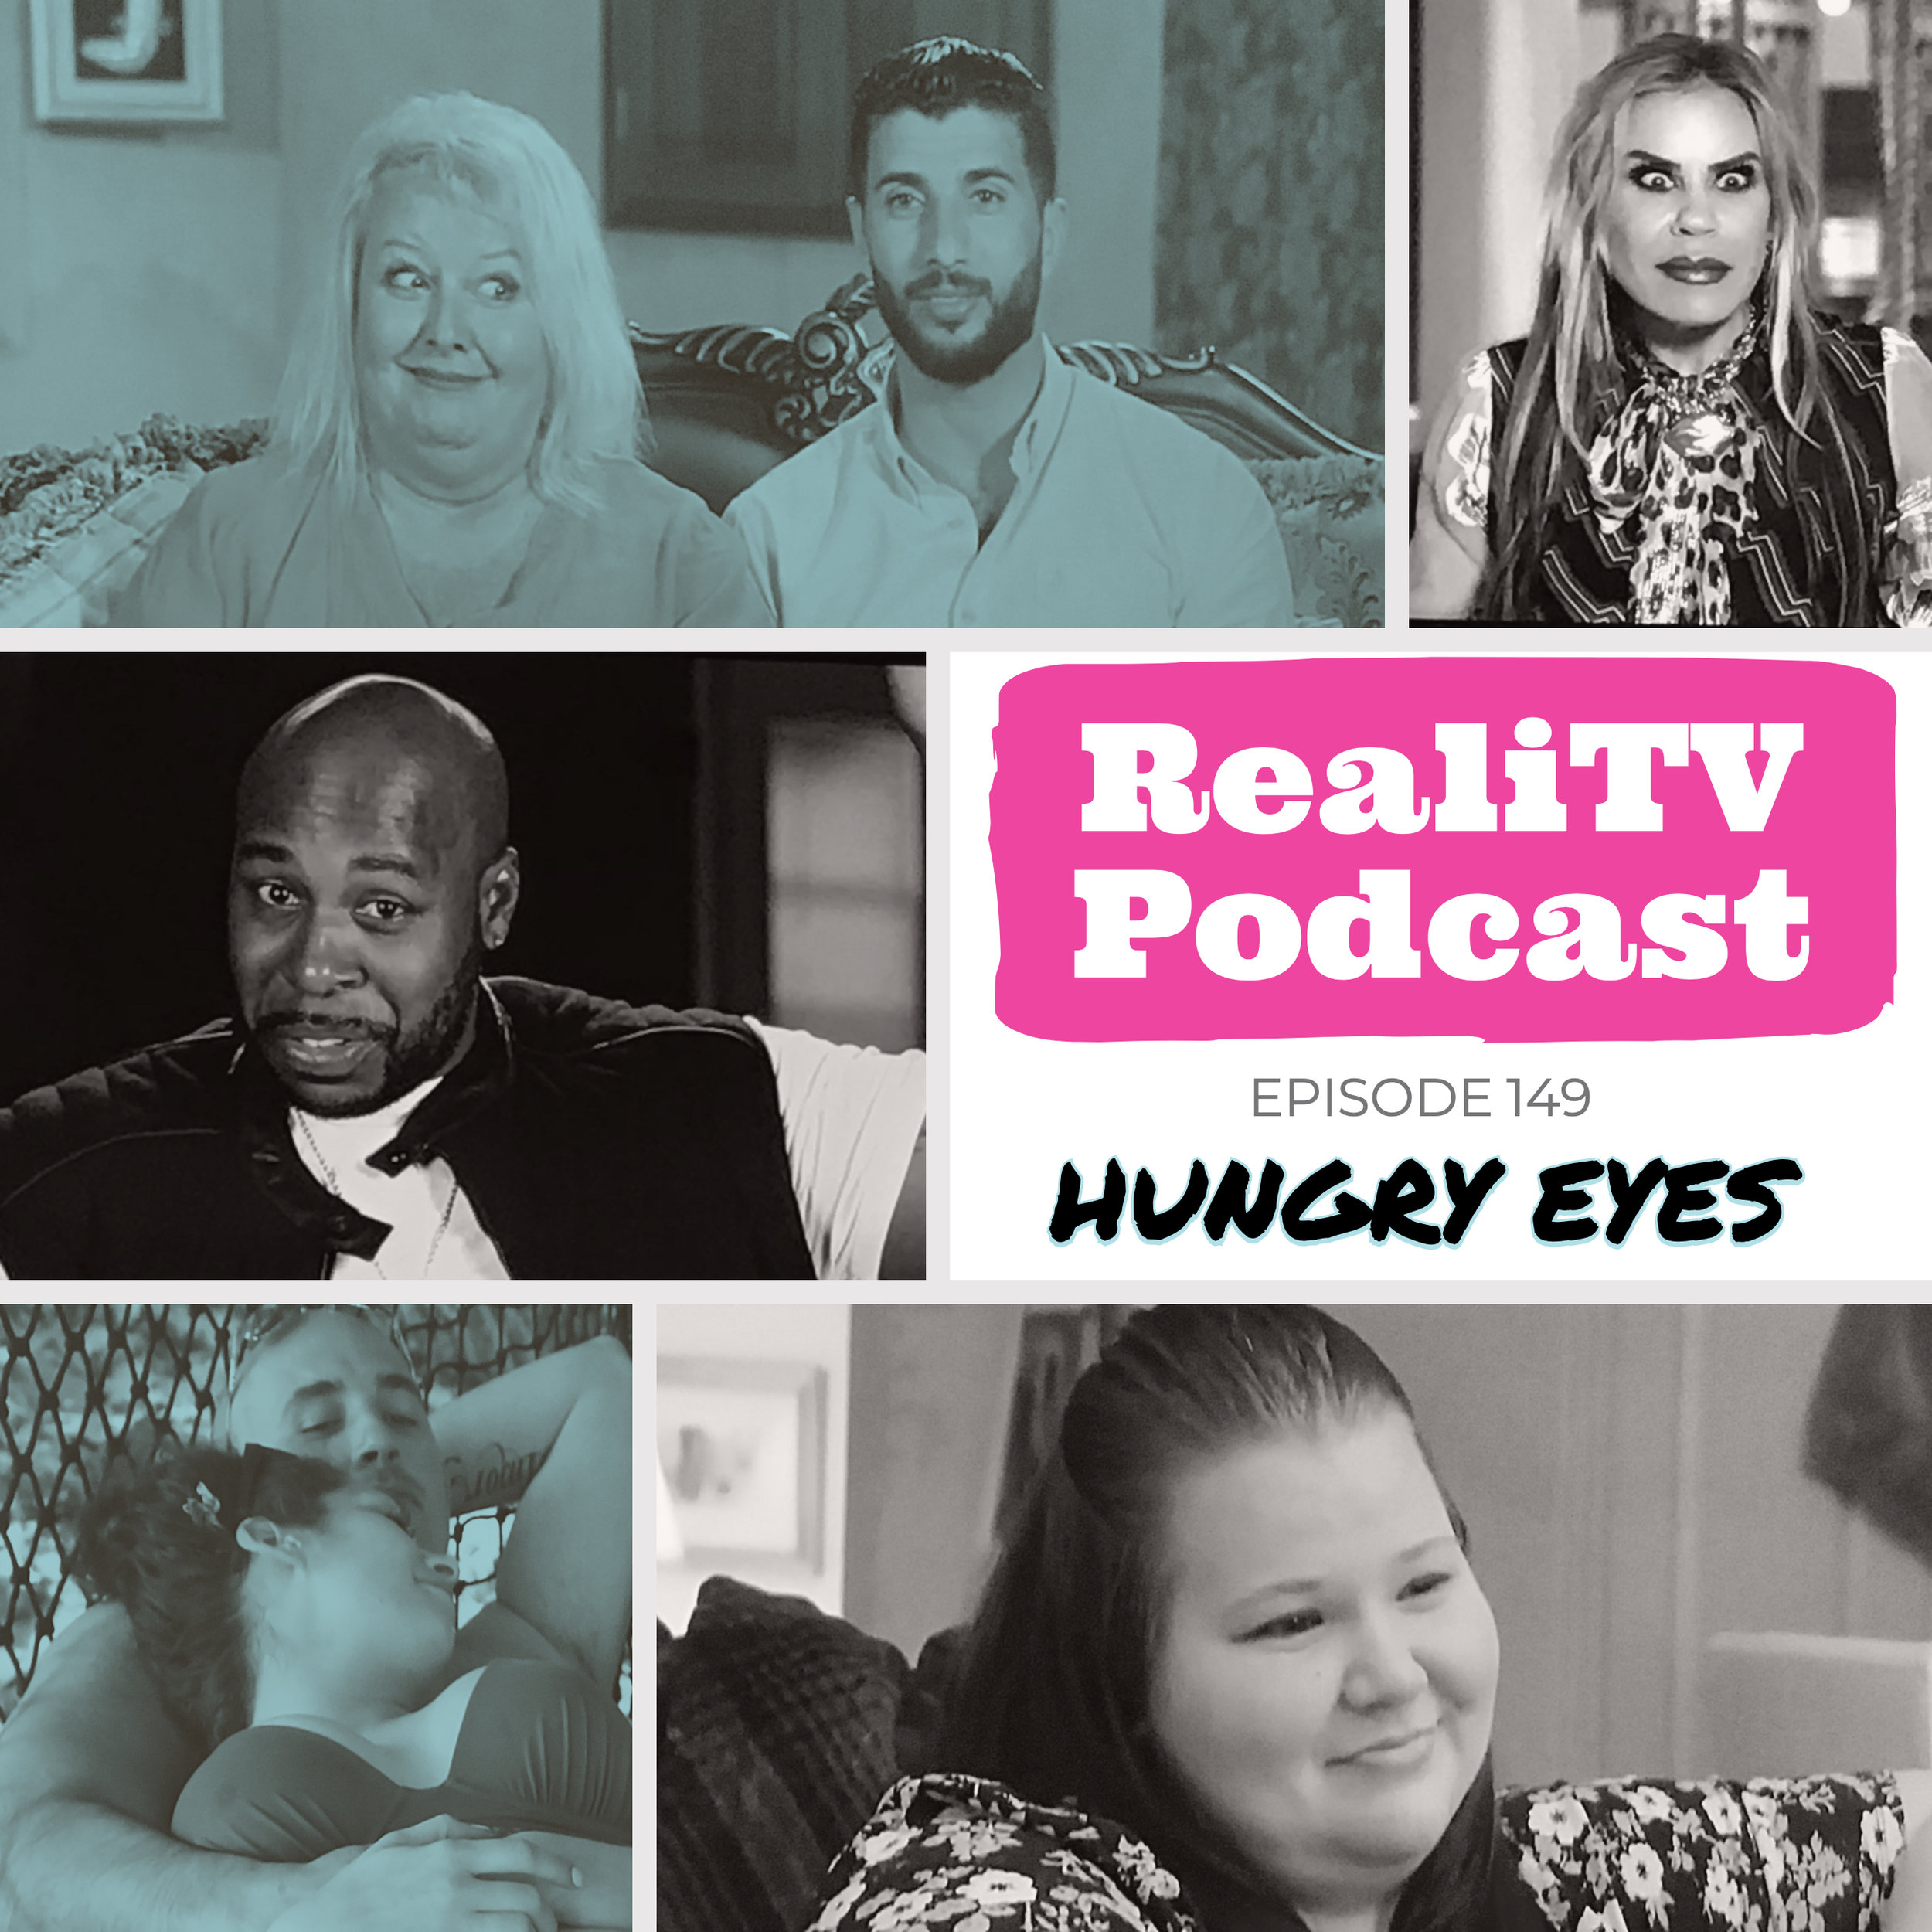 Episode 149: Hungry Eyes 07.18.19 - Give me 5…shows that is! Oh yes, I'm bringing you the best & worst moments from this week's craziest shows. First up, 90 Day Fiance Happily Ever After starring a deceased Coltee. With his hungry eyes for Debbie, he brought us perhaps the creepiest ending to a Dateline episode ever.Married at First Sight cannot get enough of the Seinfelds marital bedroom activities. Too bad Deona hasn't gotten the memo that she, too, is on the show.Marrying Millions debuted our newest shit shows to watch implode, namely Billy Wonka. Strange that his millions can't buy him teeth that don't match traffic cones. Over on Love After Lockup, Michael wears Trump's old toupee as a hood and Kendall remembers to lock up his briskets.The show is never complete without 90 Day Fiance The Other Way. Sumit will be Jenny's hero & chase away her pain. He will stand by her forever, or until Cory makes him disappear with his black magic. You'll get jiggy no matter what, trust me.Save 20% at www.ShopKino.com using code REALITV at checkout.Try Simple Health for FREE! www.simplehealth.com/REALITV and enter REALITV at checkout.